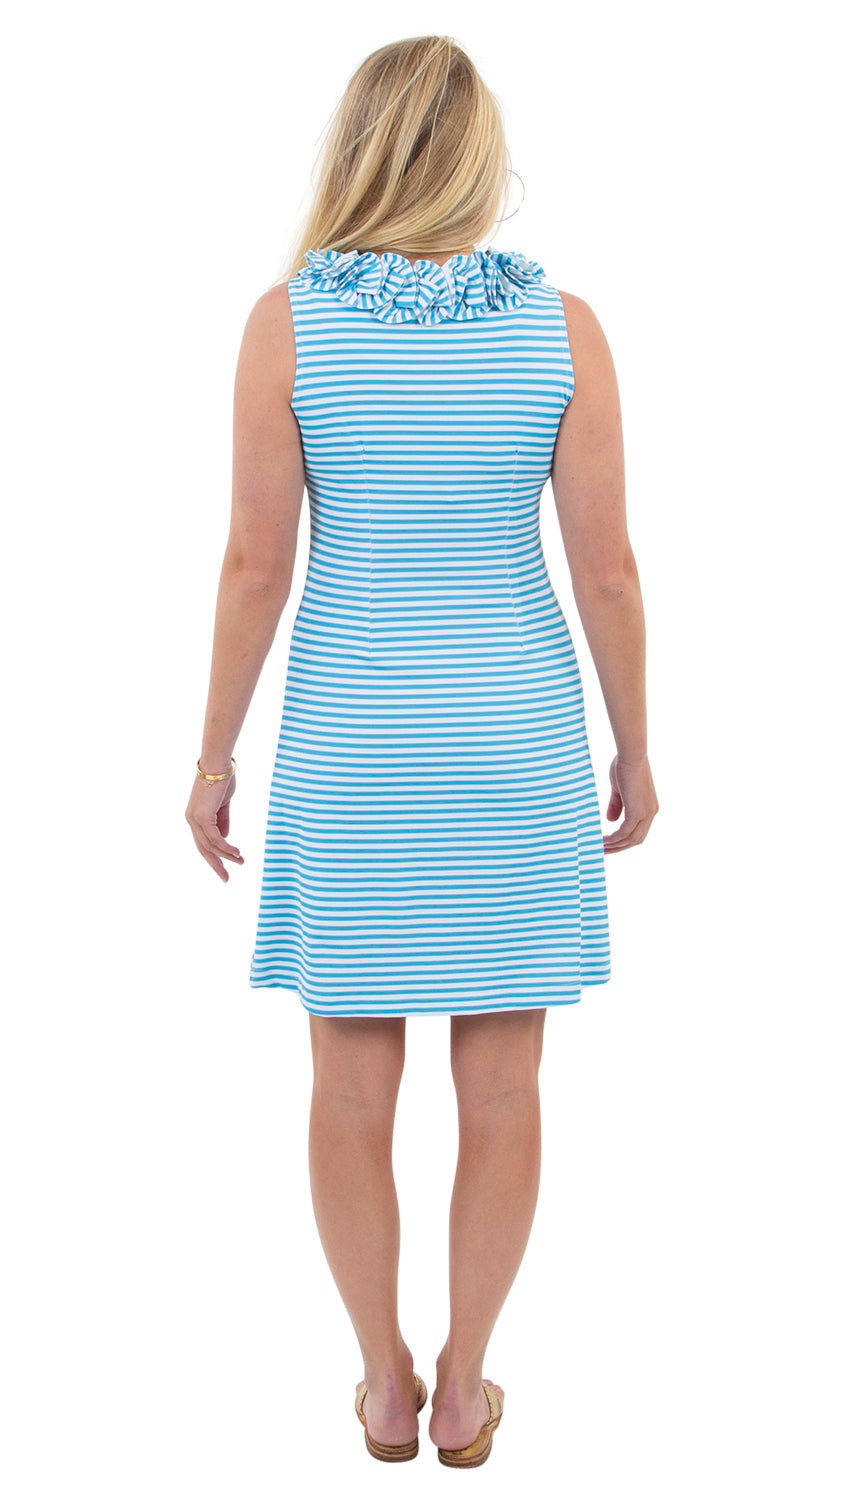 Cricket Dress Sleeveless- Aquarius/White Stripe